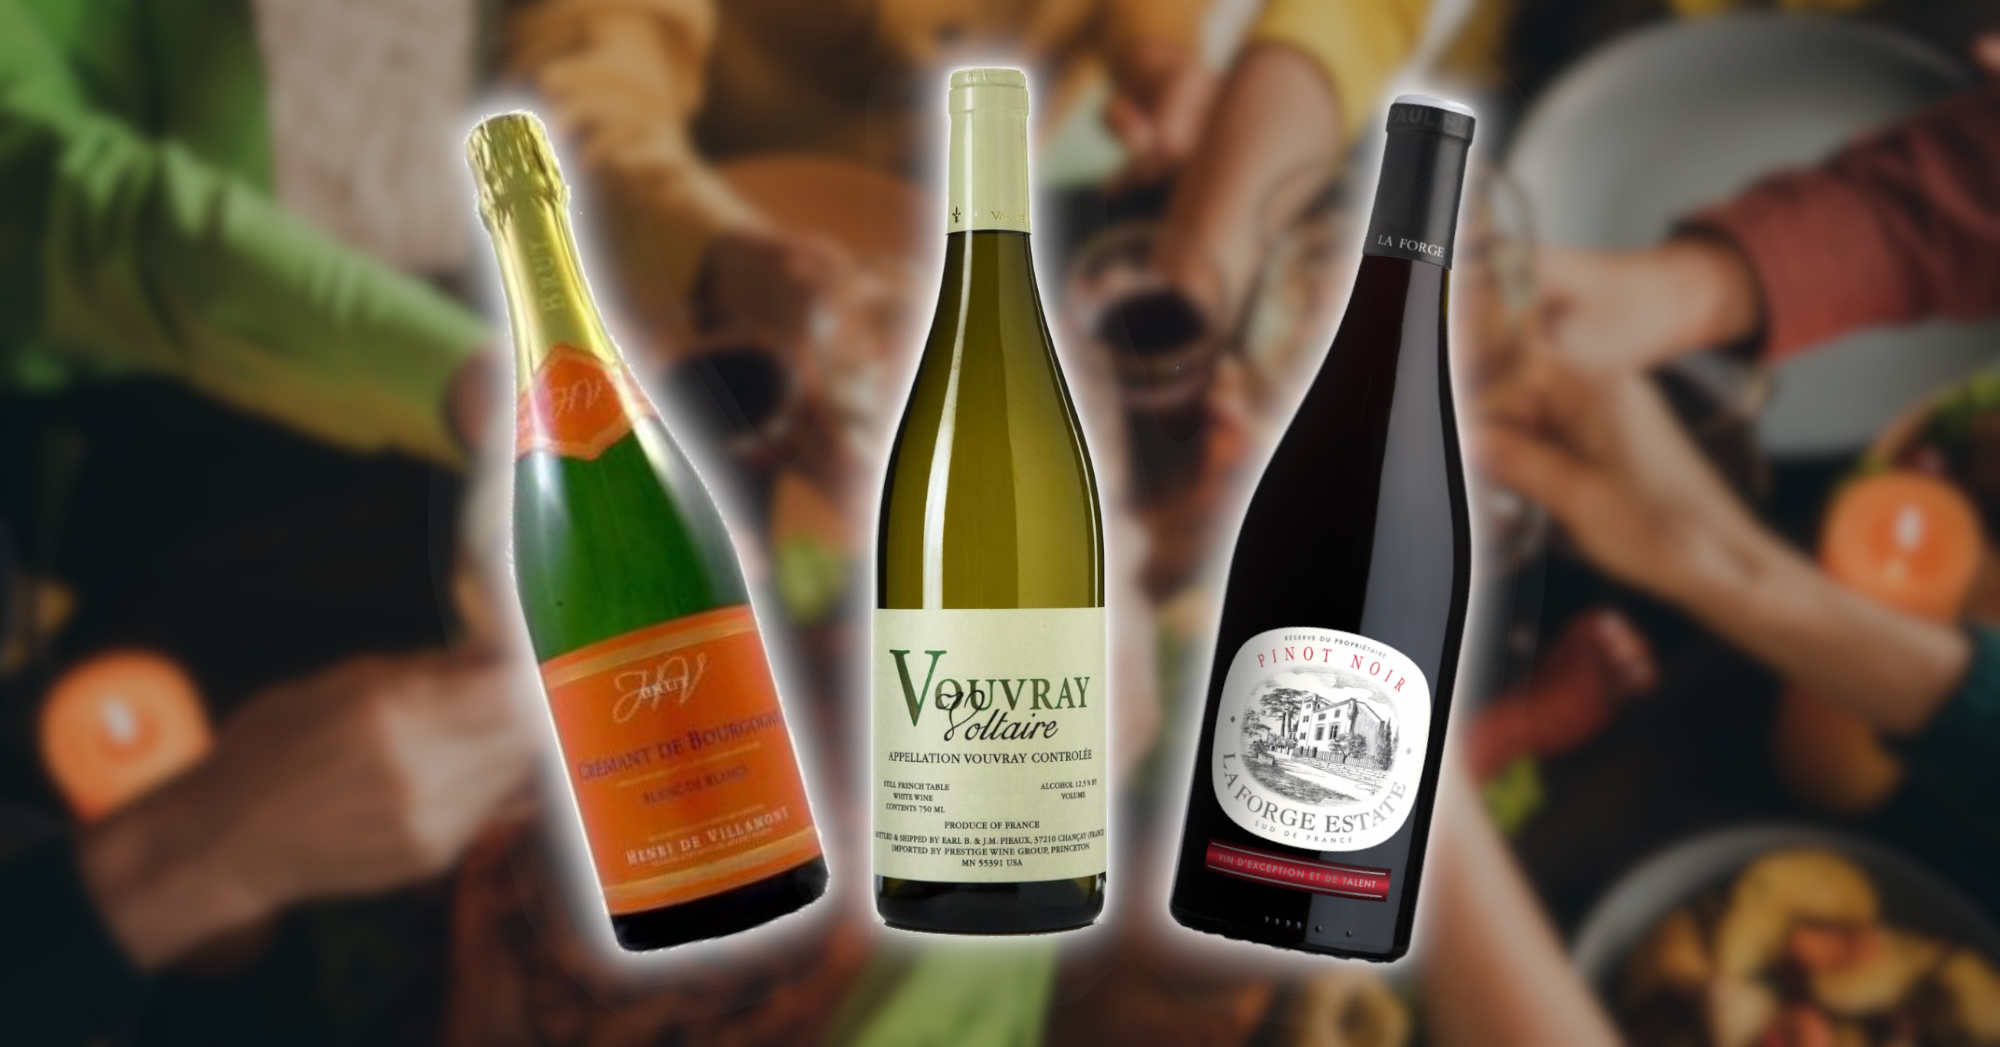 Three Affordable Wines for Thanksgiving - Cremant, Vouvray Voltaire, La Forge Pinot Noir